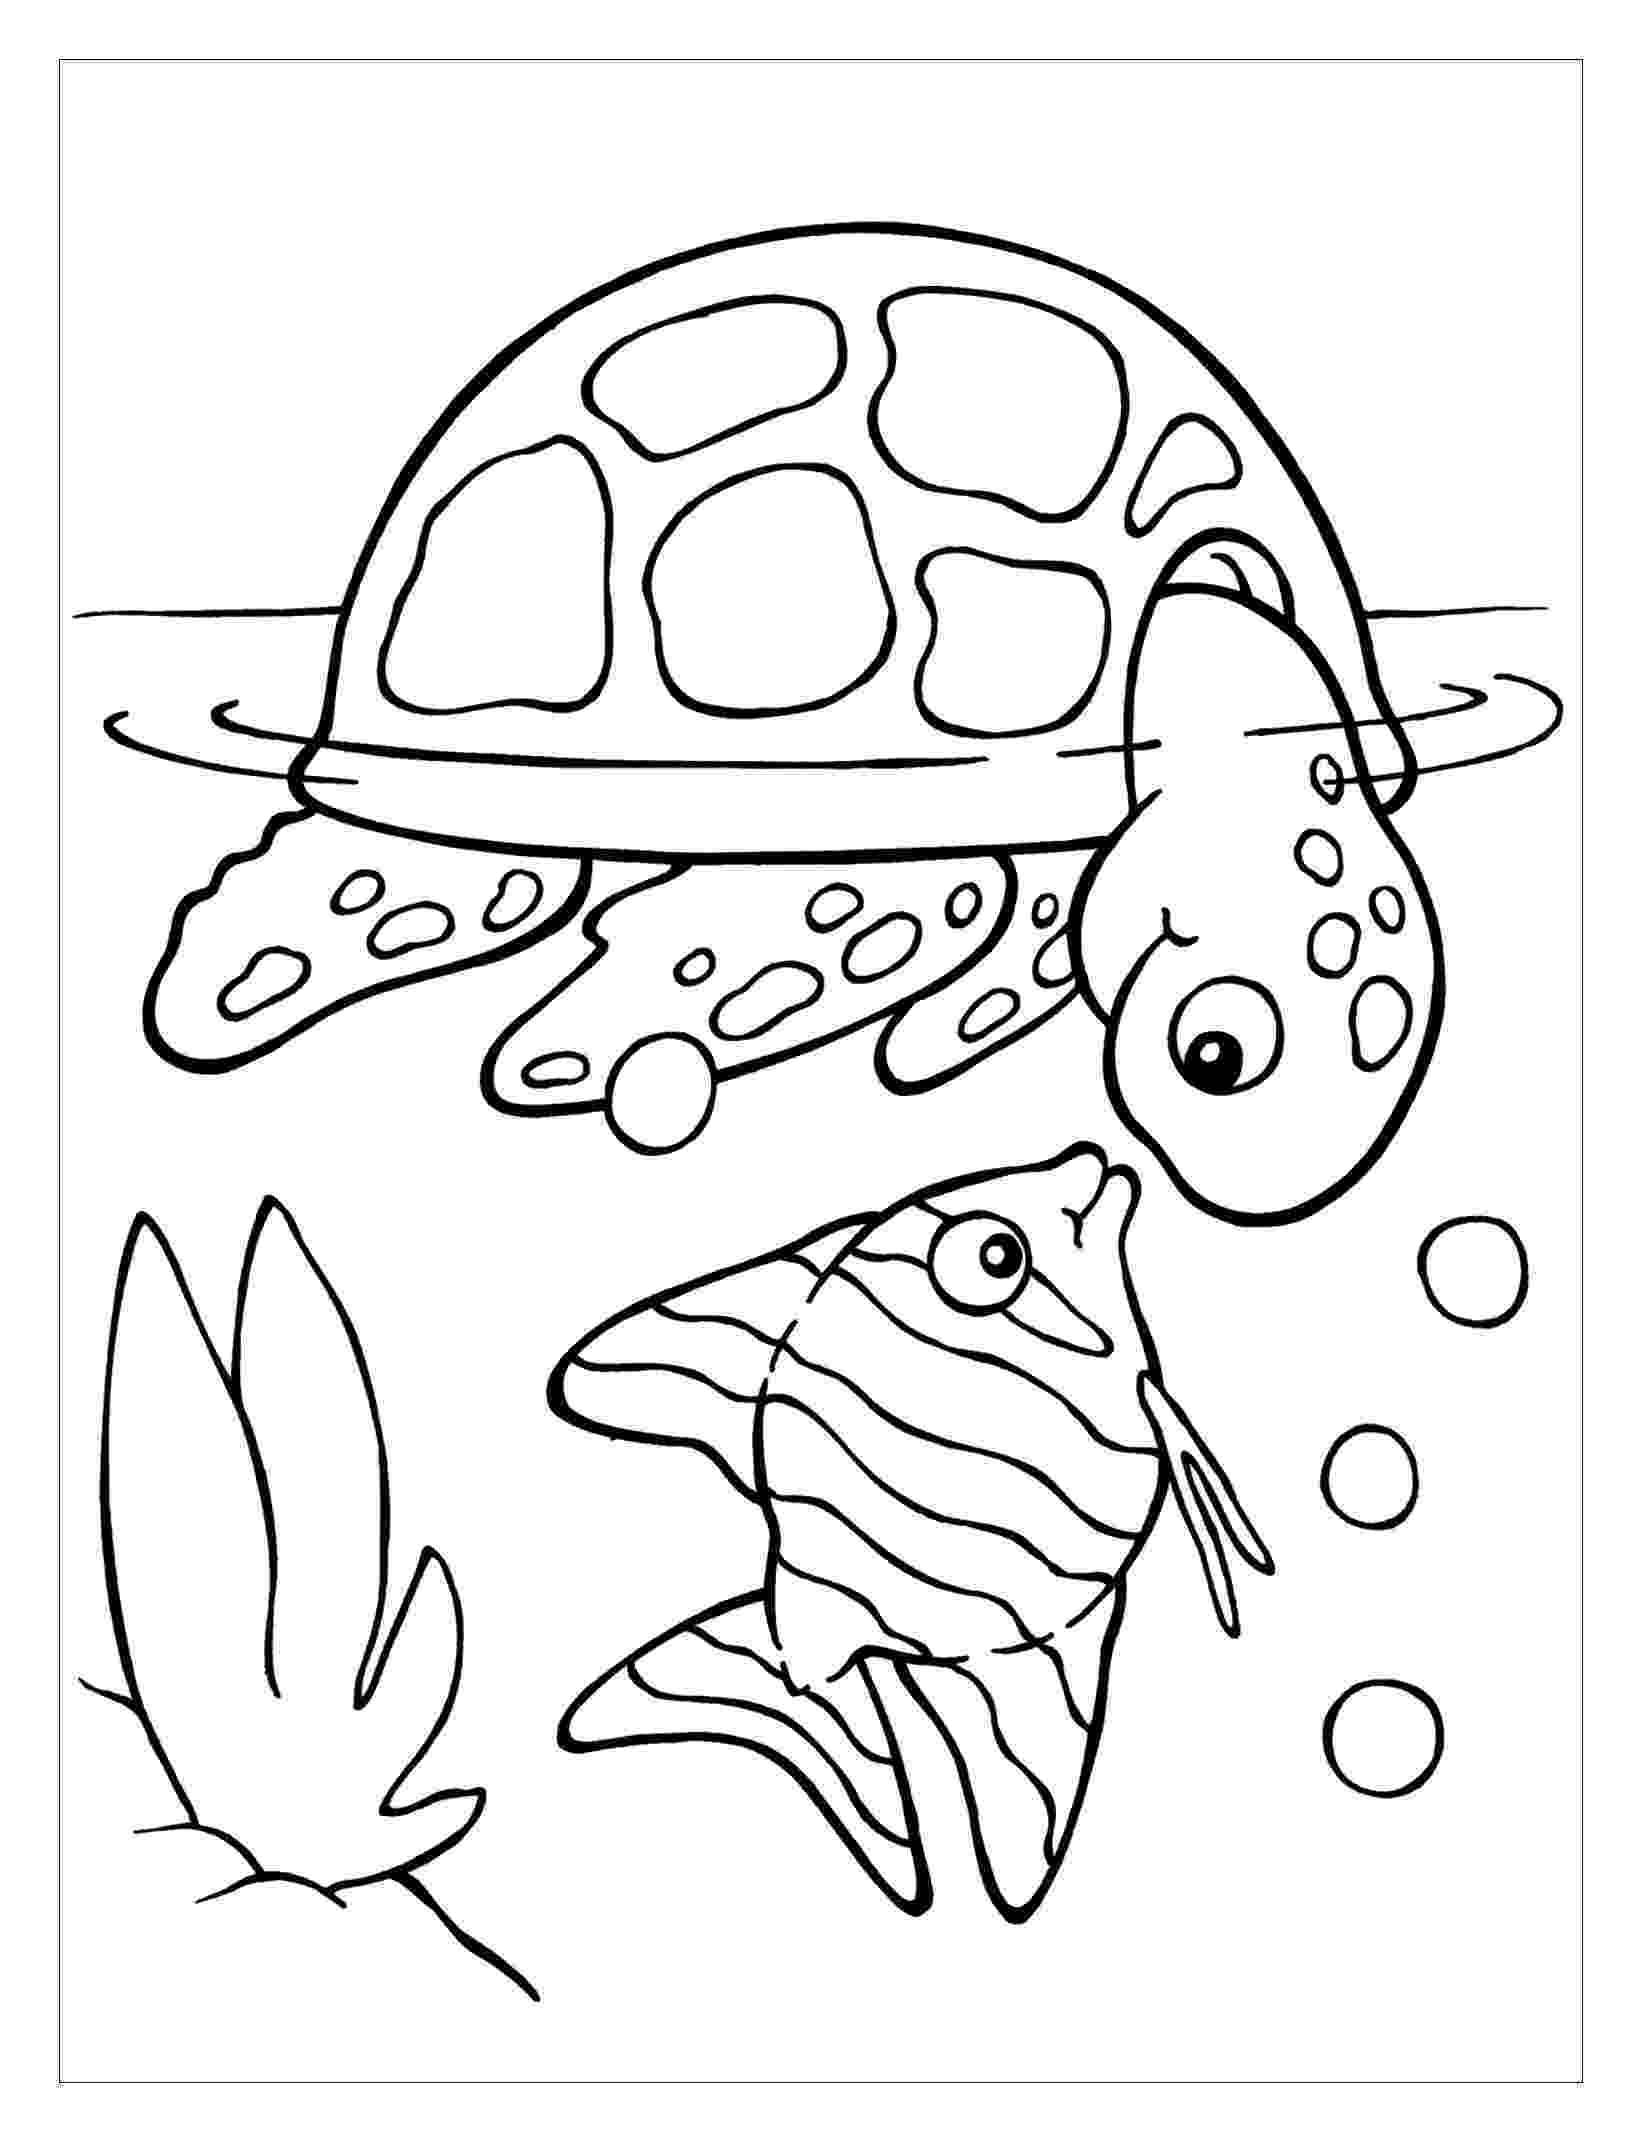 coloring page of turtle turtles to color for kids turtles kids coloring pages turtle of coloring page